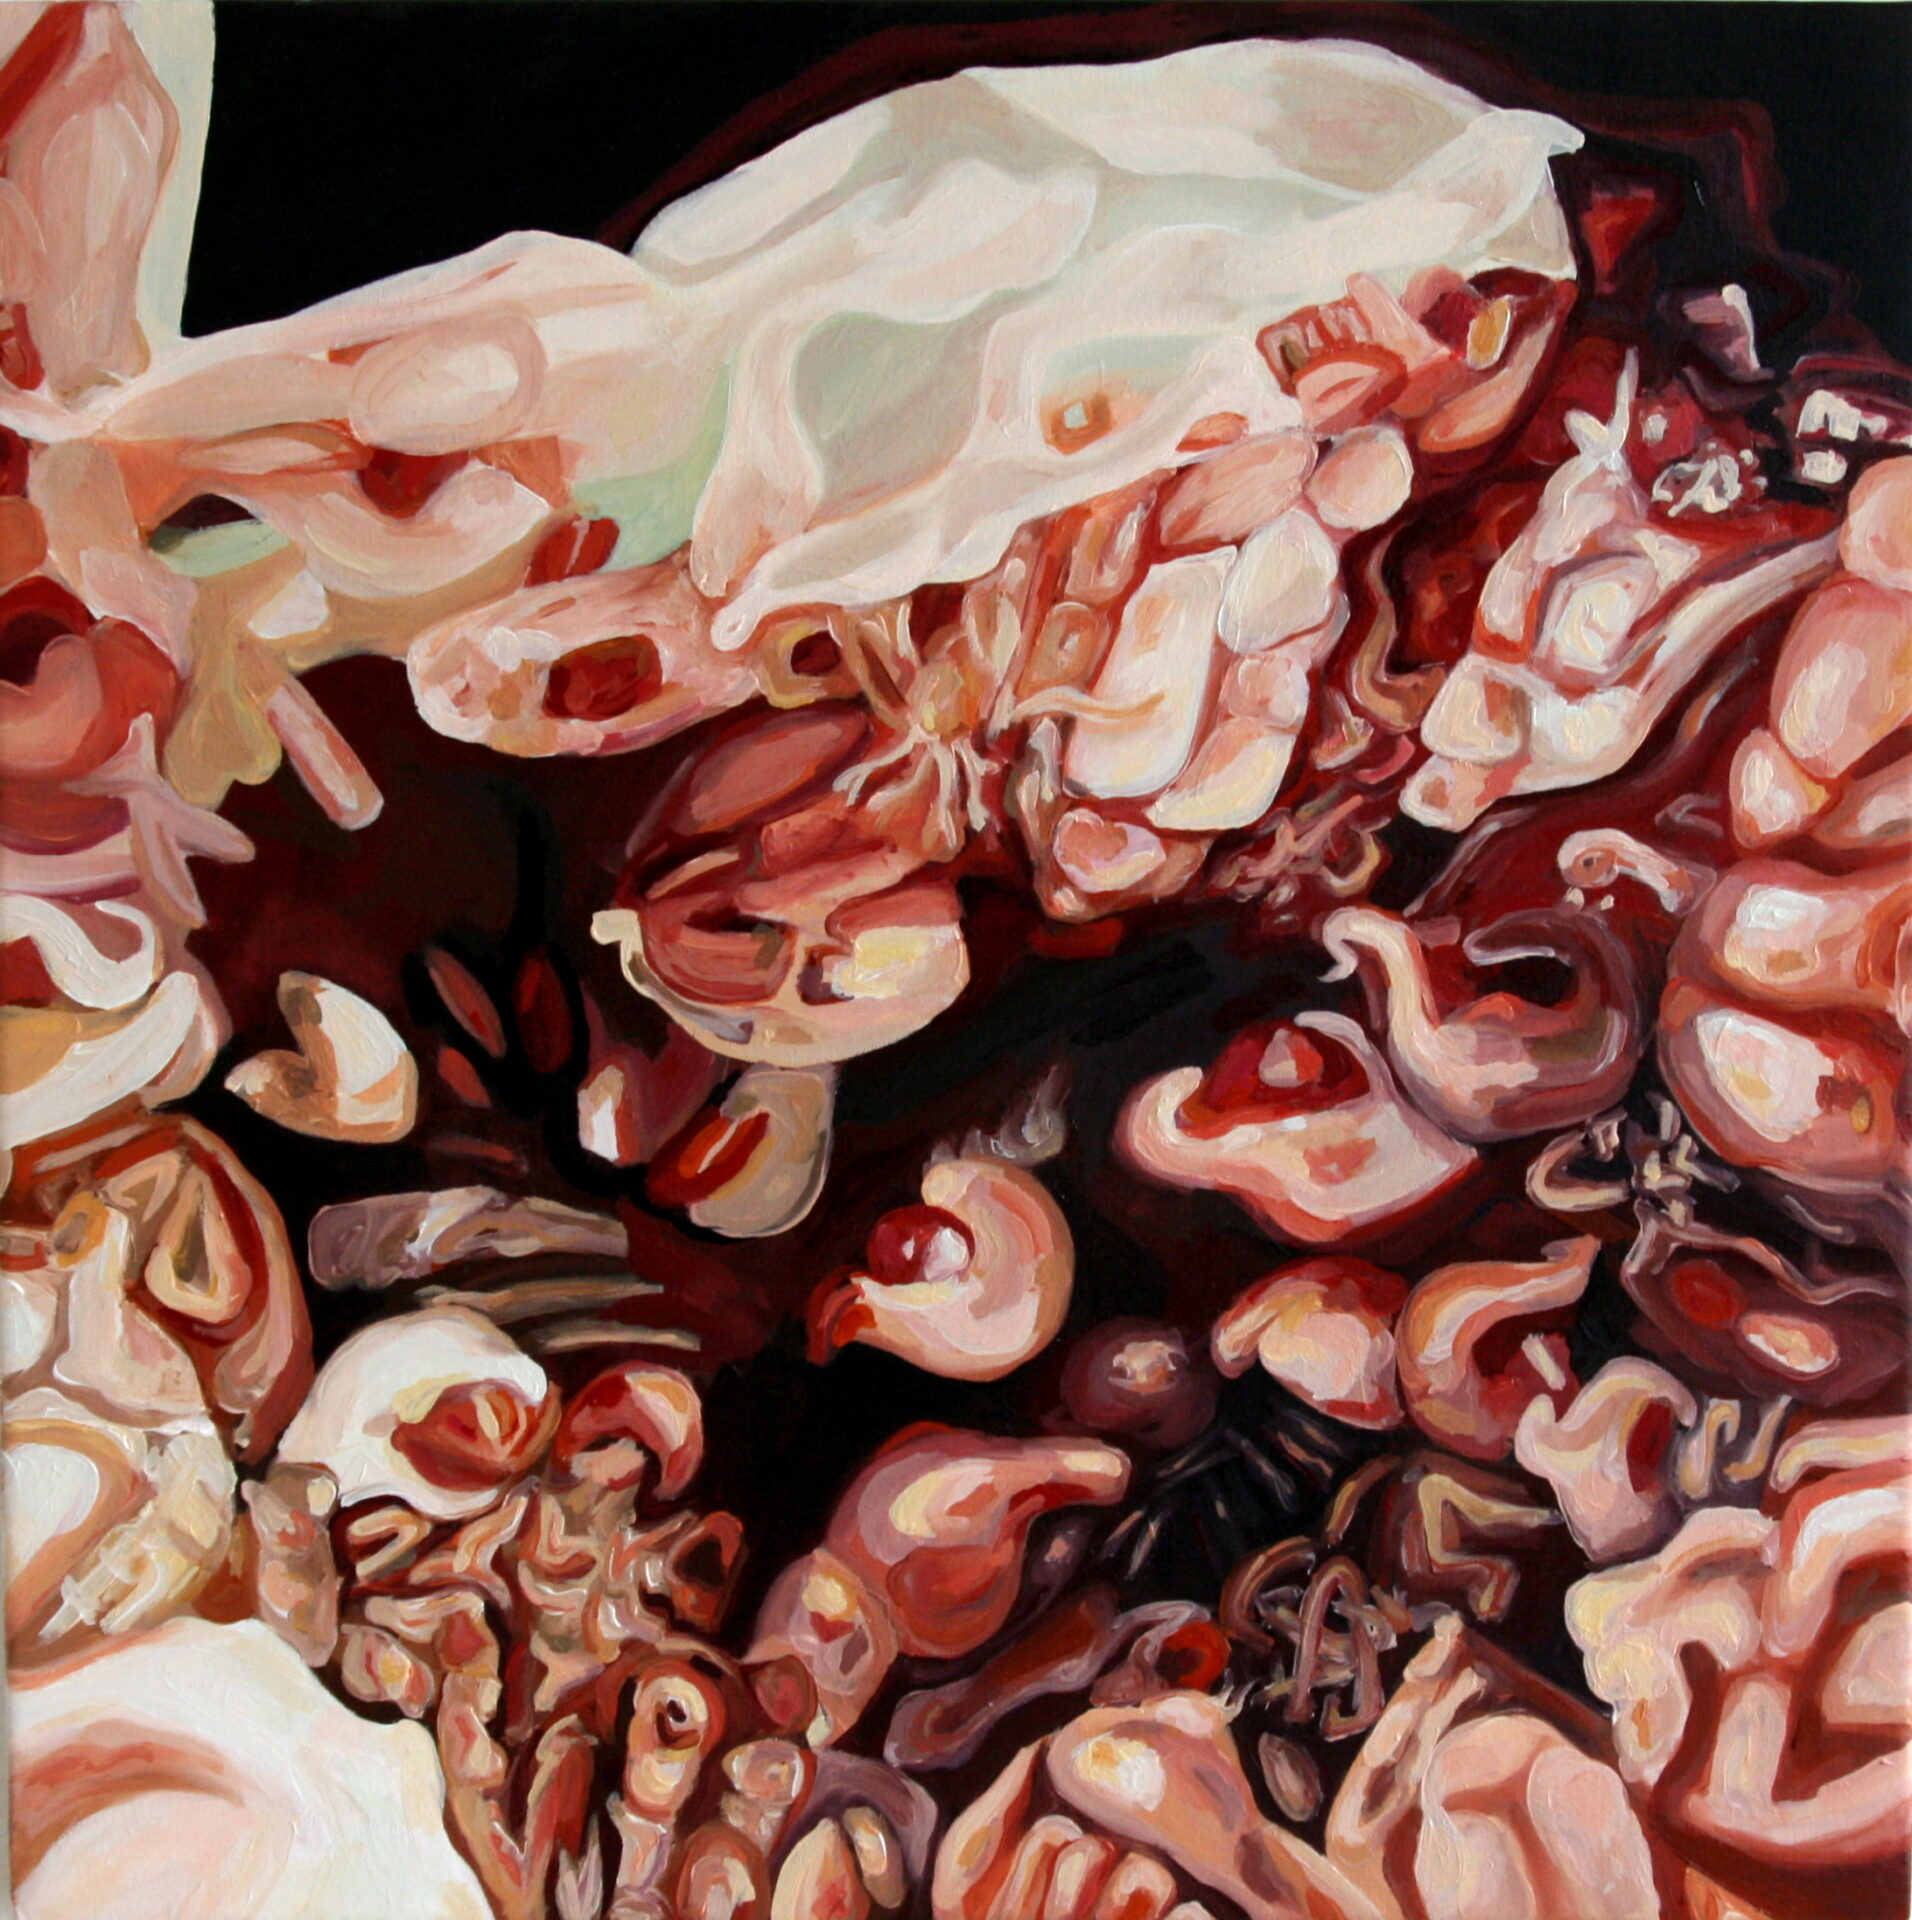 Angela Faustina, Fico (Fig) IV, 2011. Oil on canvas, 40 cm by 40 cm.